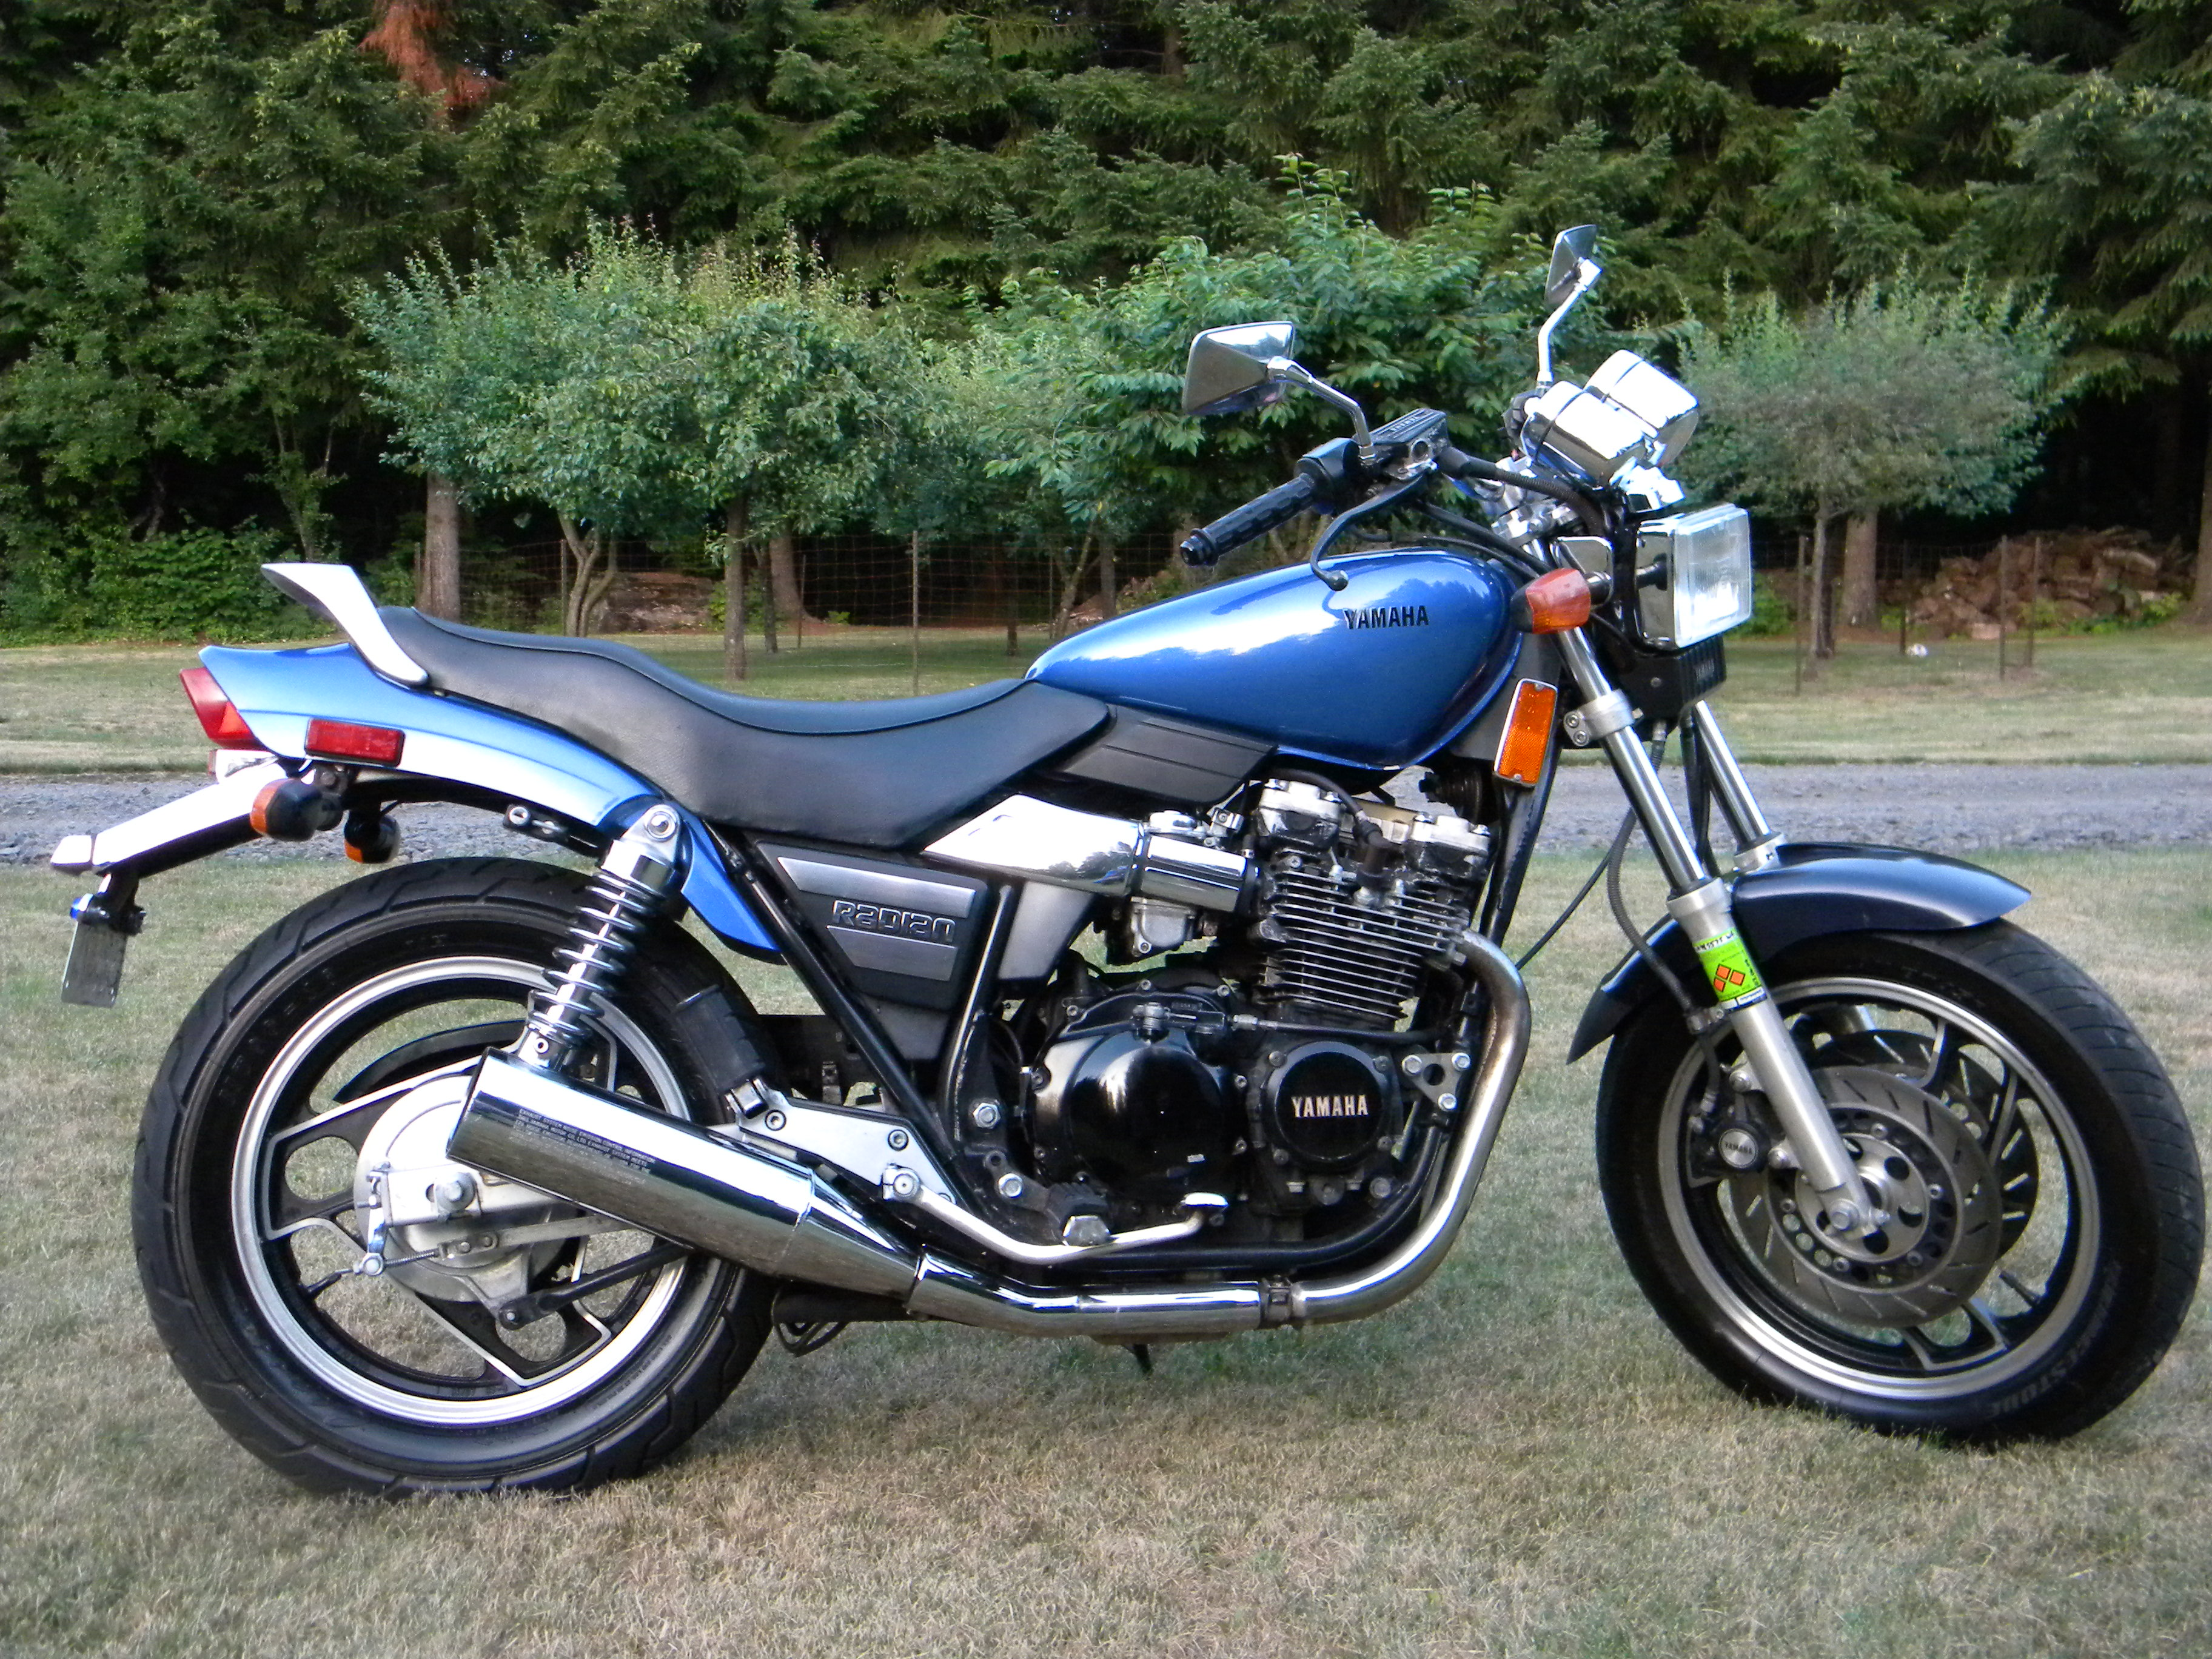 Yamaha RD 350 (reduced effect) 1987 #9